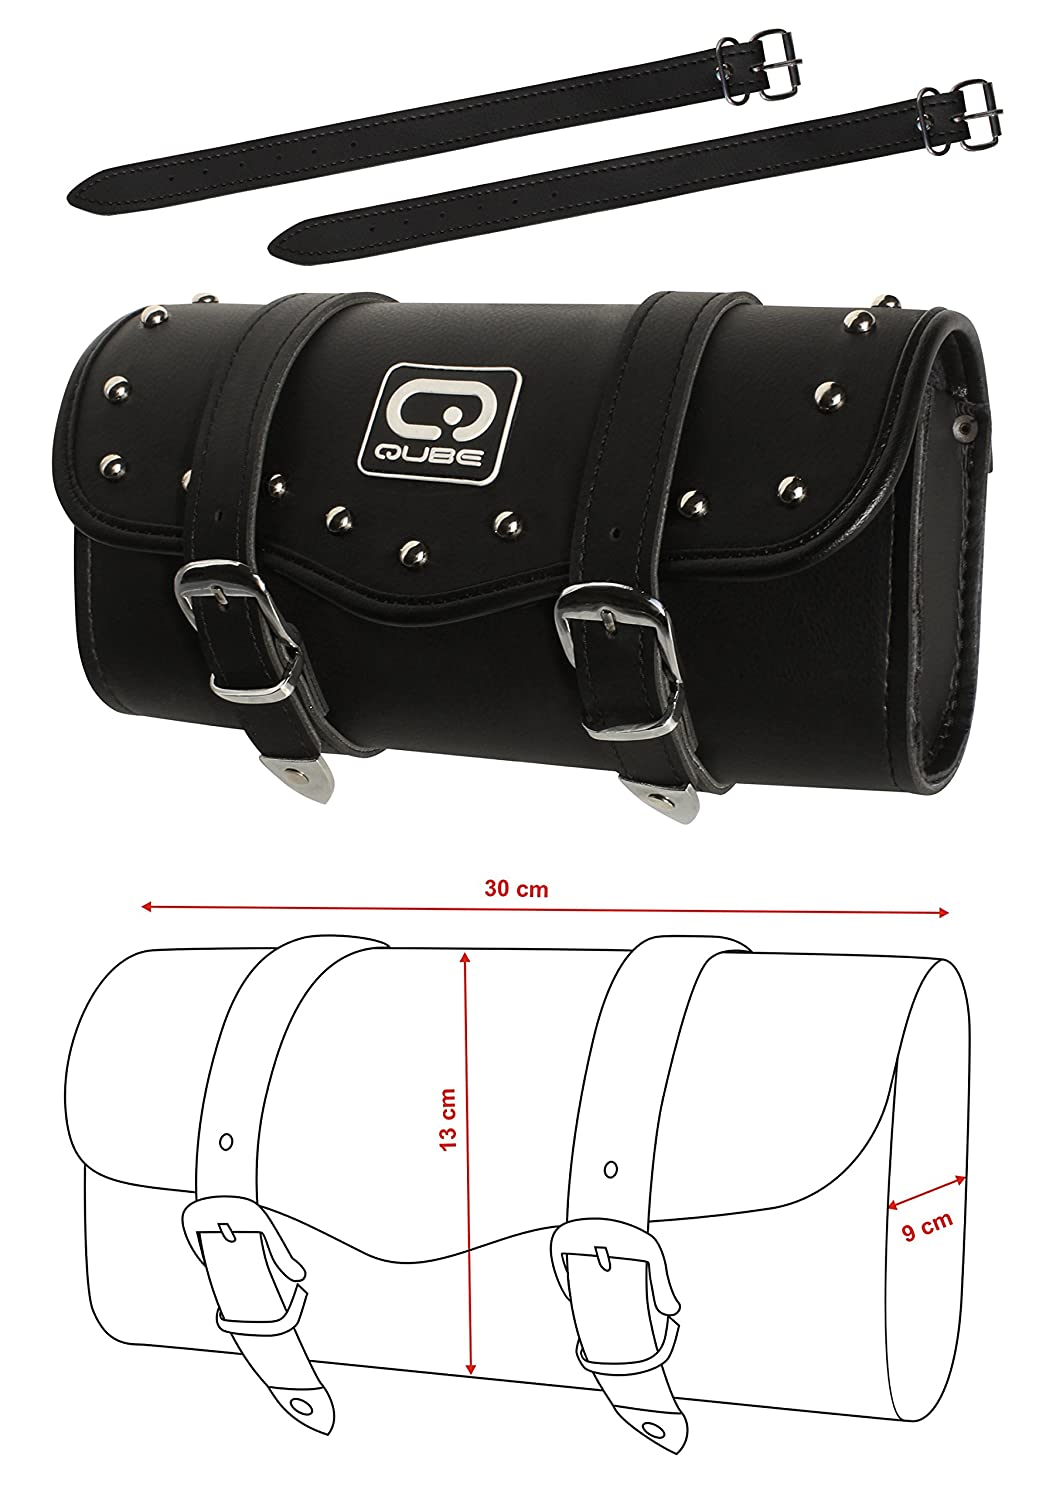 Tool Bag Motorcycle leather storage bag Drum style storage bag